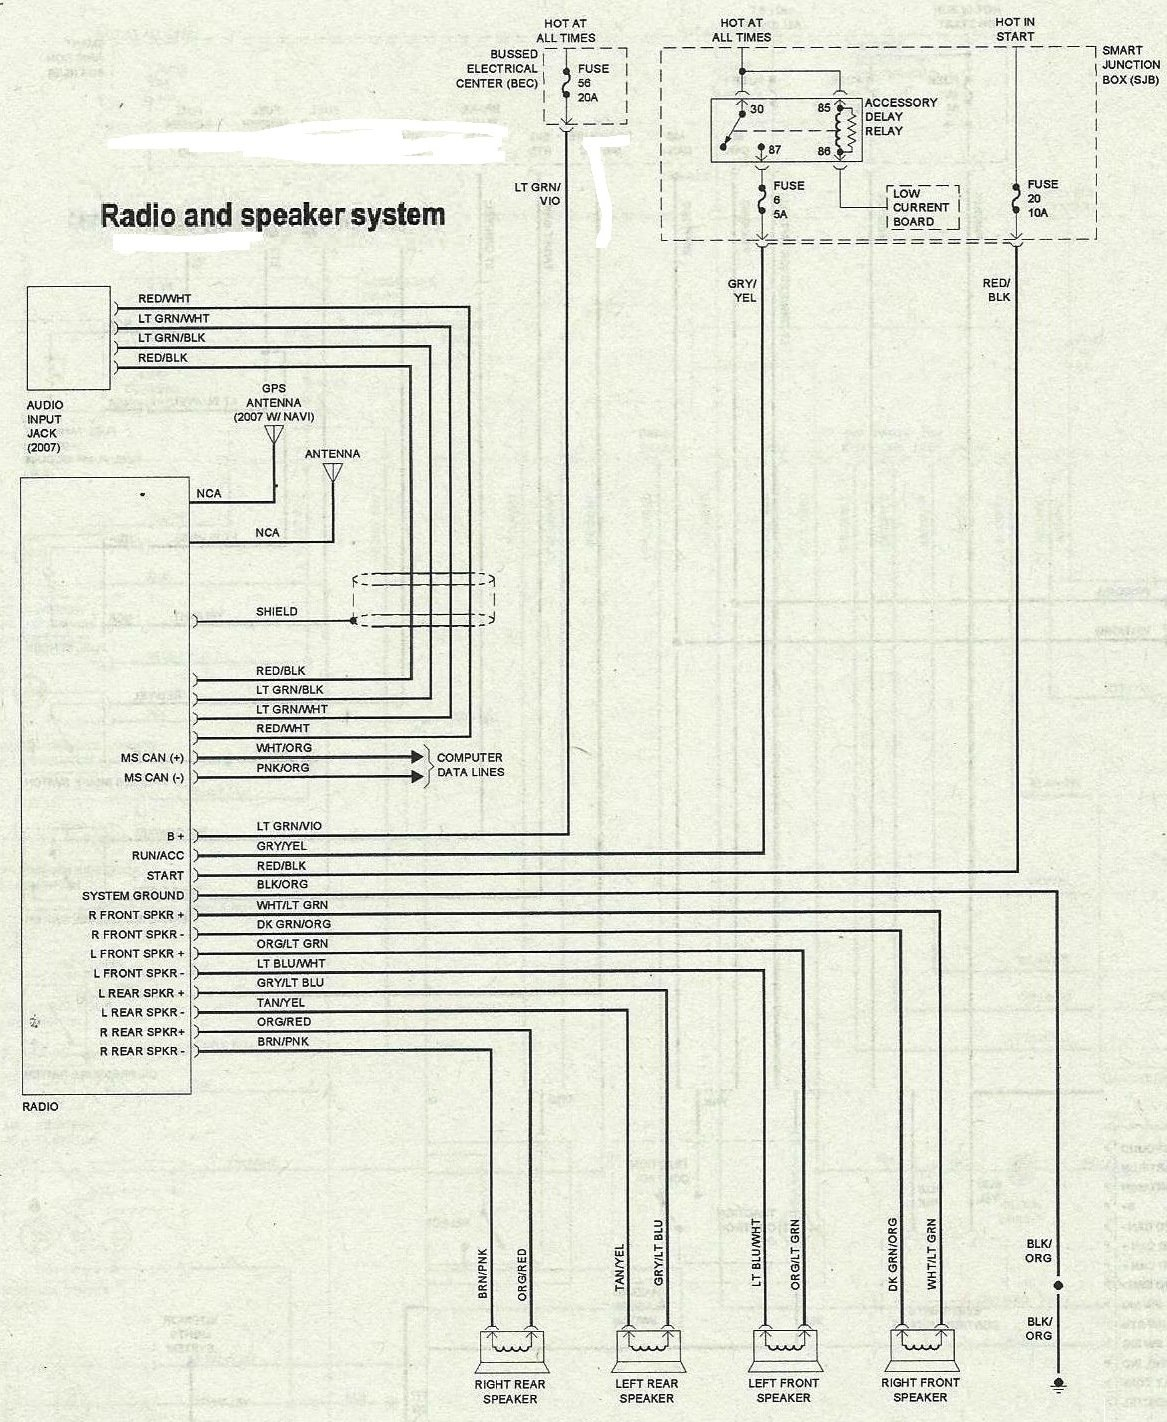 wiring diagram for 1968 ford mustang wiring diagram for 2005 ford mustang radio being the cause of battery drain - ford mustang forum